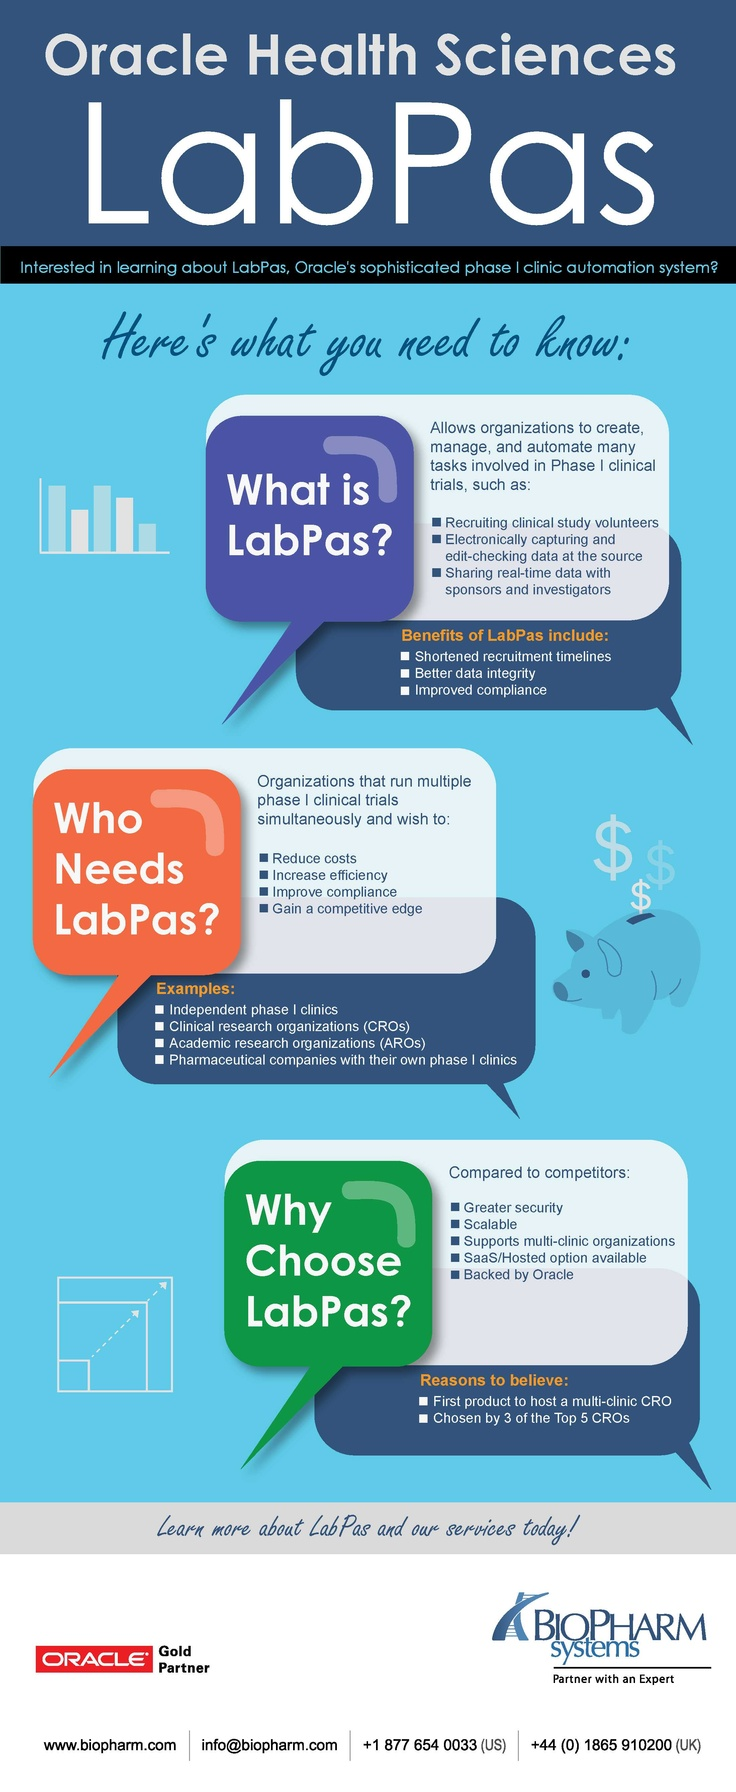 Oracle Health Sciences LabPas: What You Need to Know #clinical #pharma # infographic